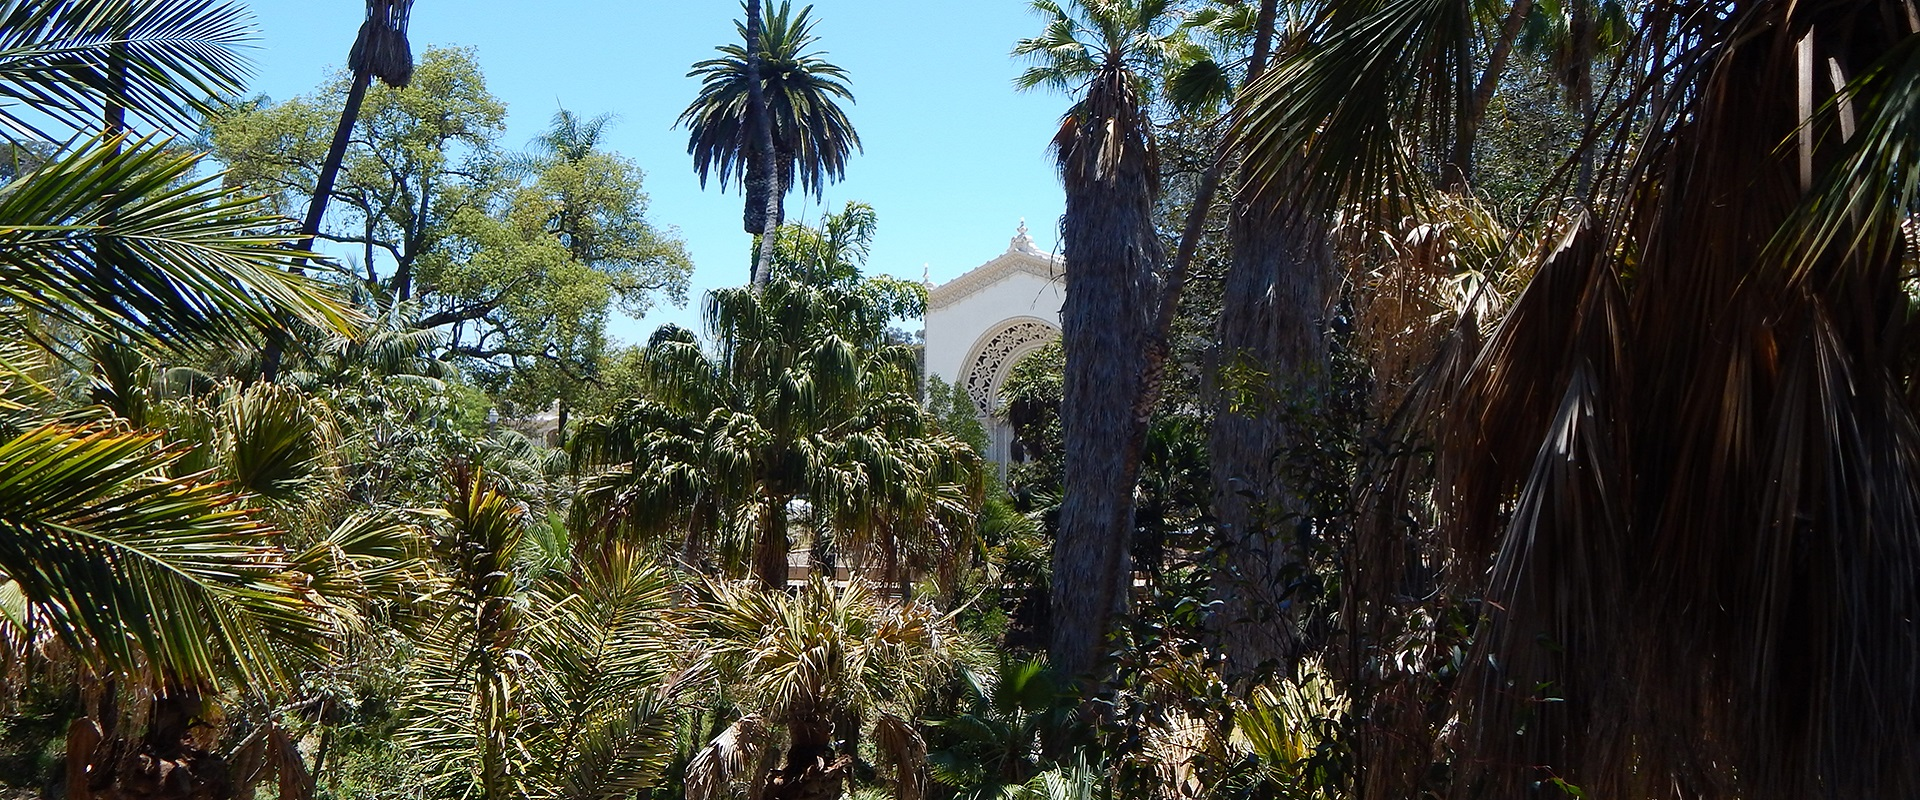 View of Palm Canyon at Balboa Park